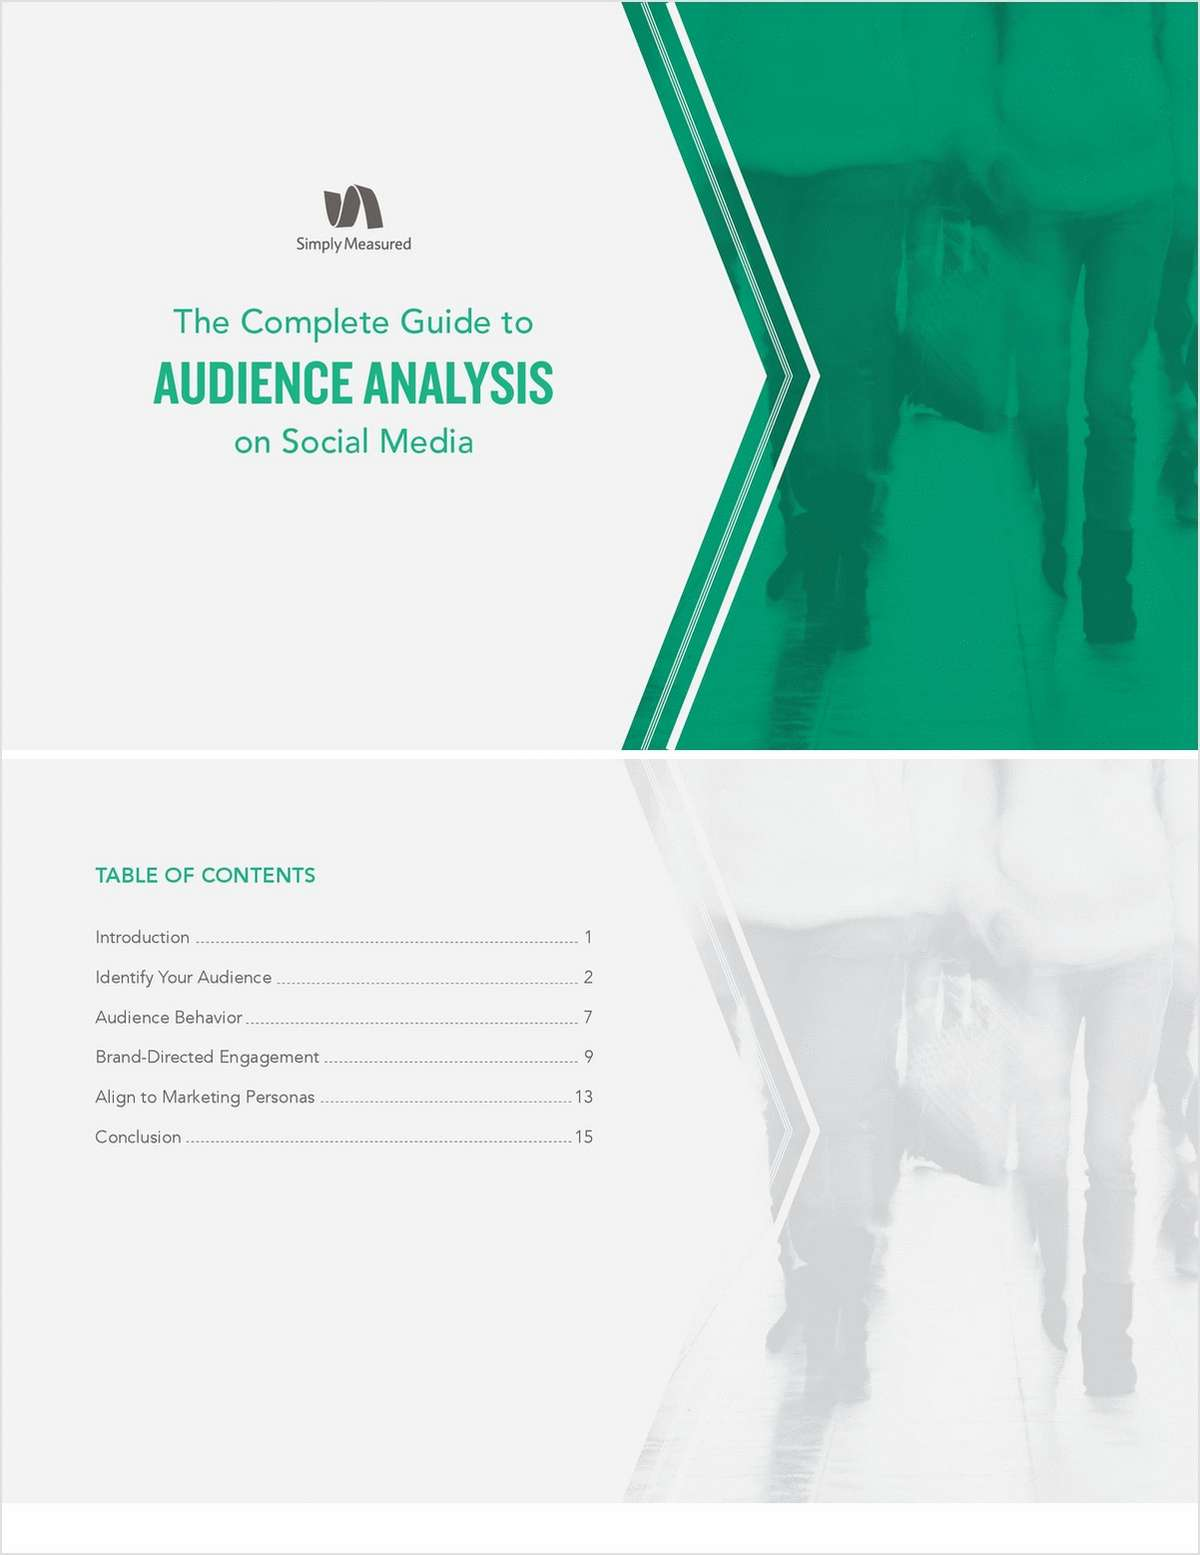 The Complete Guide to AUDIENCE ANALYSIS on Social Media